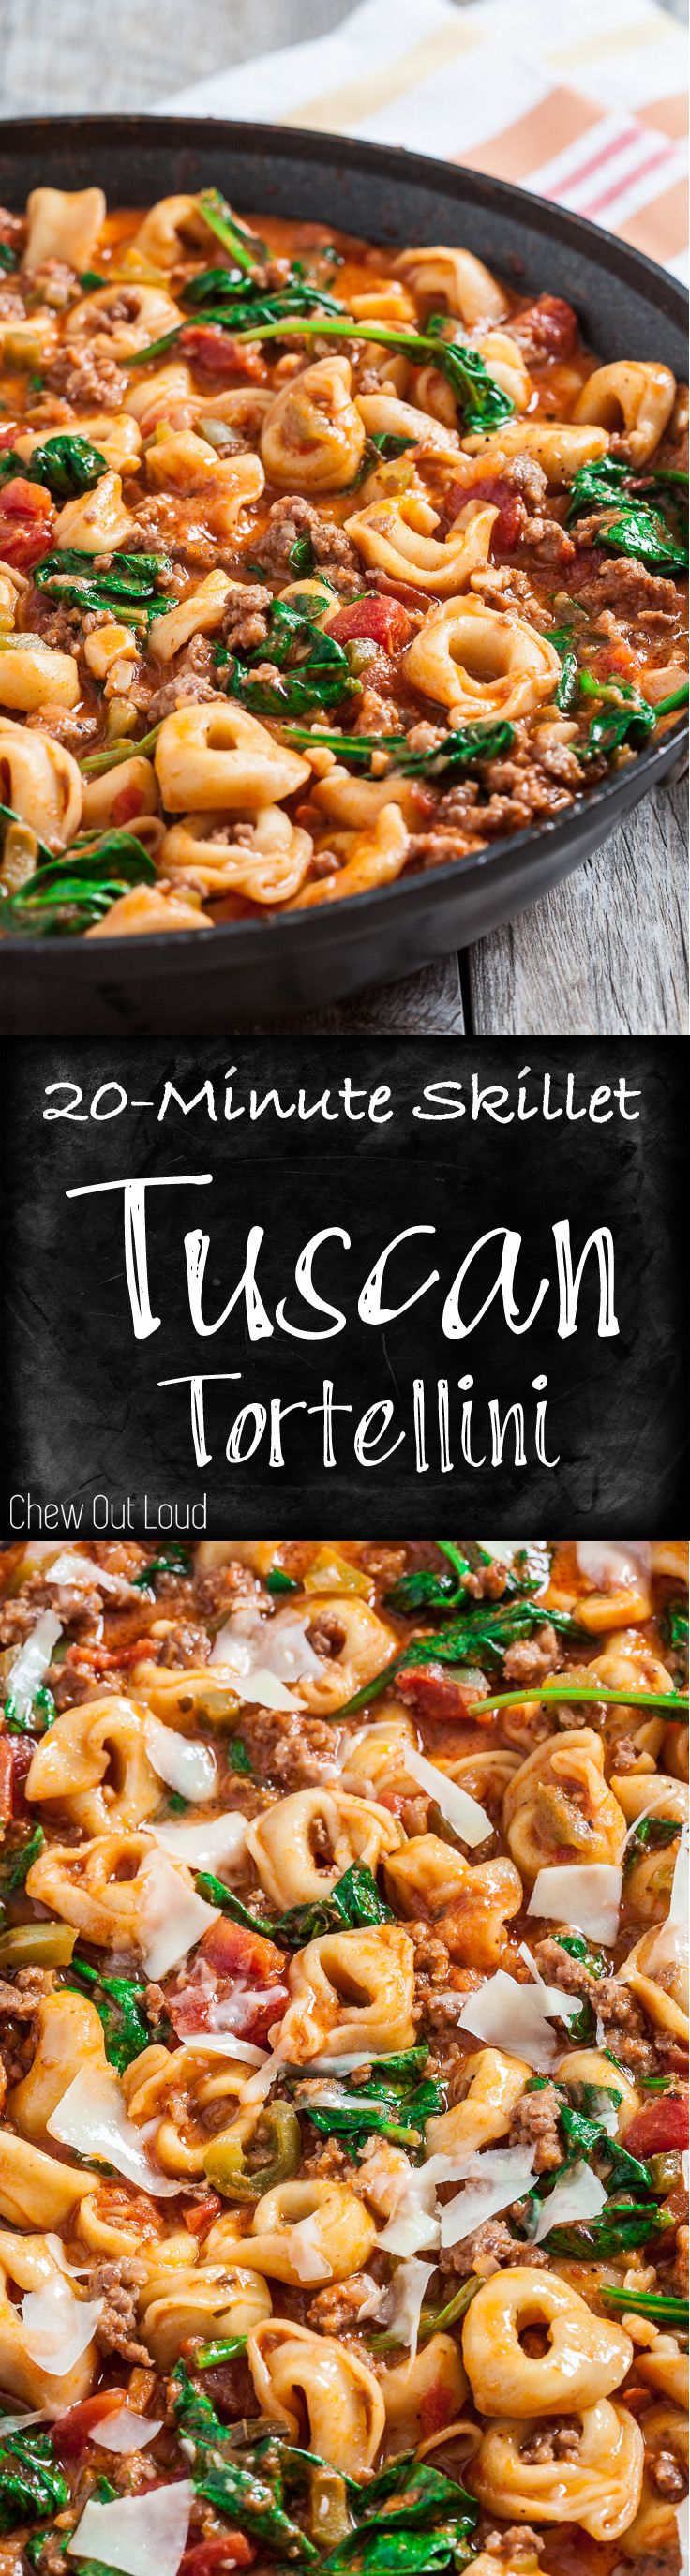 This Skillet Tuscan Tortellini is packed with flavor and is a meal-in-one! Just 20 minutes and one pan is all you need for this family-favorite dinner.